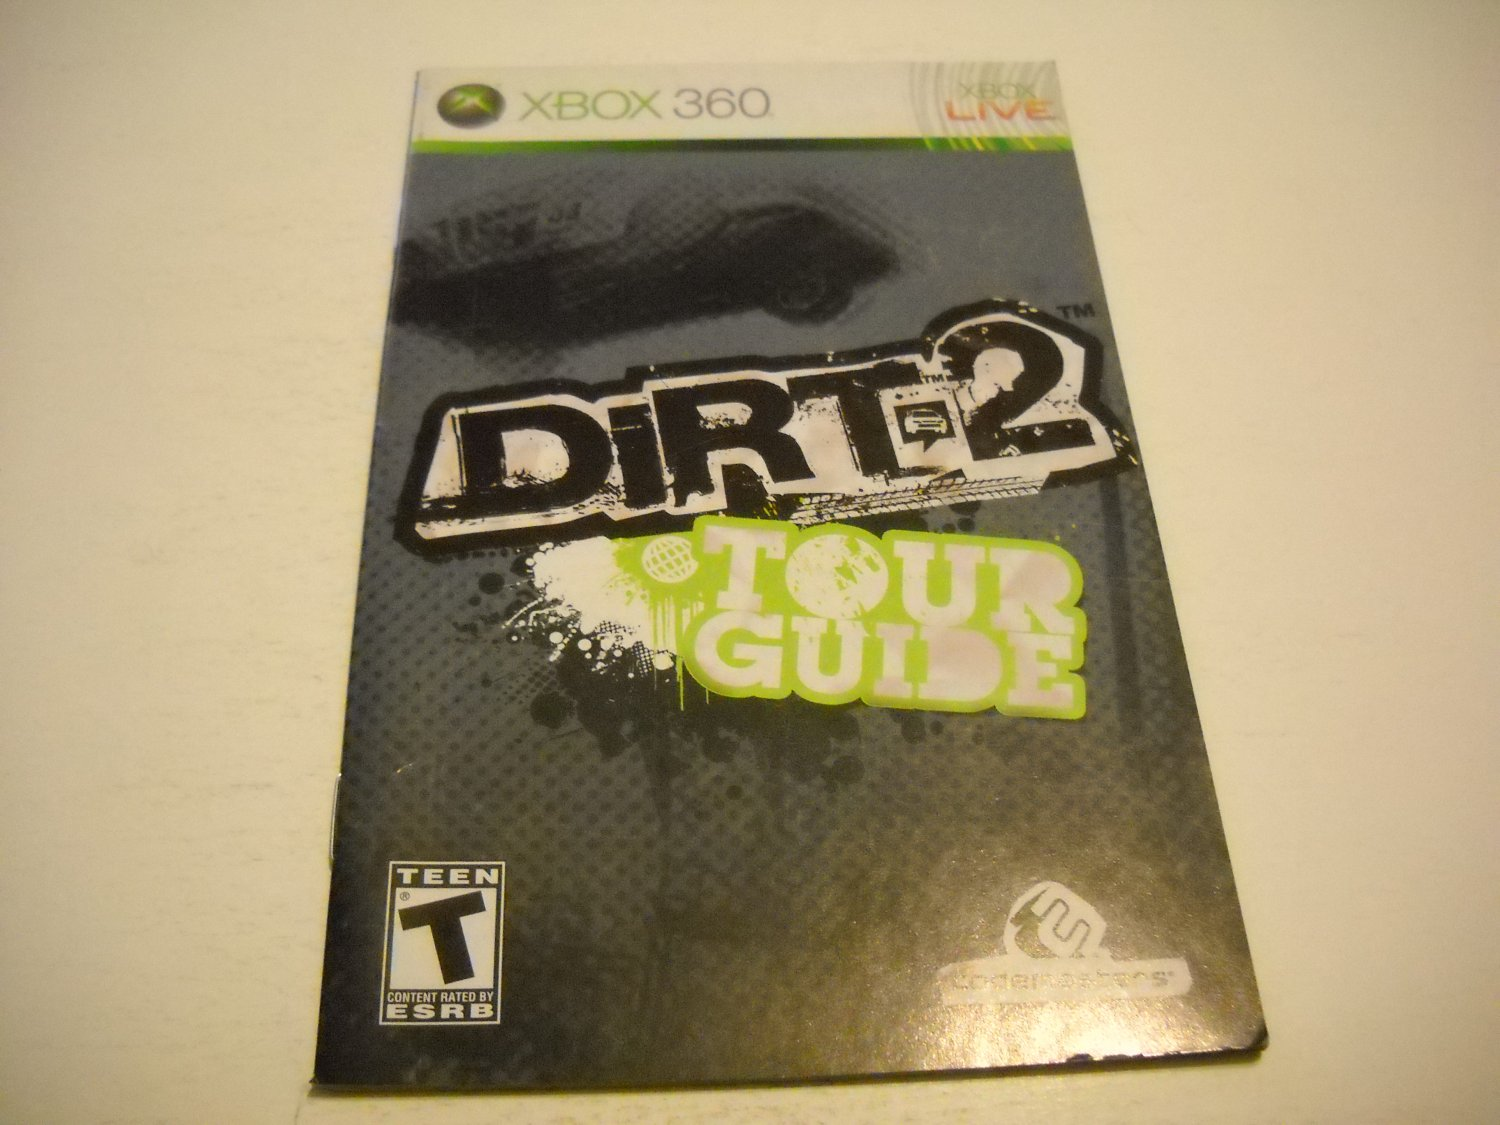 Manual ONLY ~  for Dirt 2 Tour Guide   - Xbox 360 Instruction Booklet